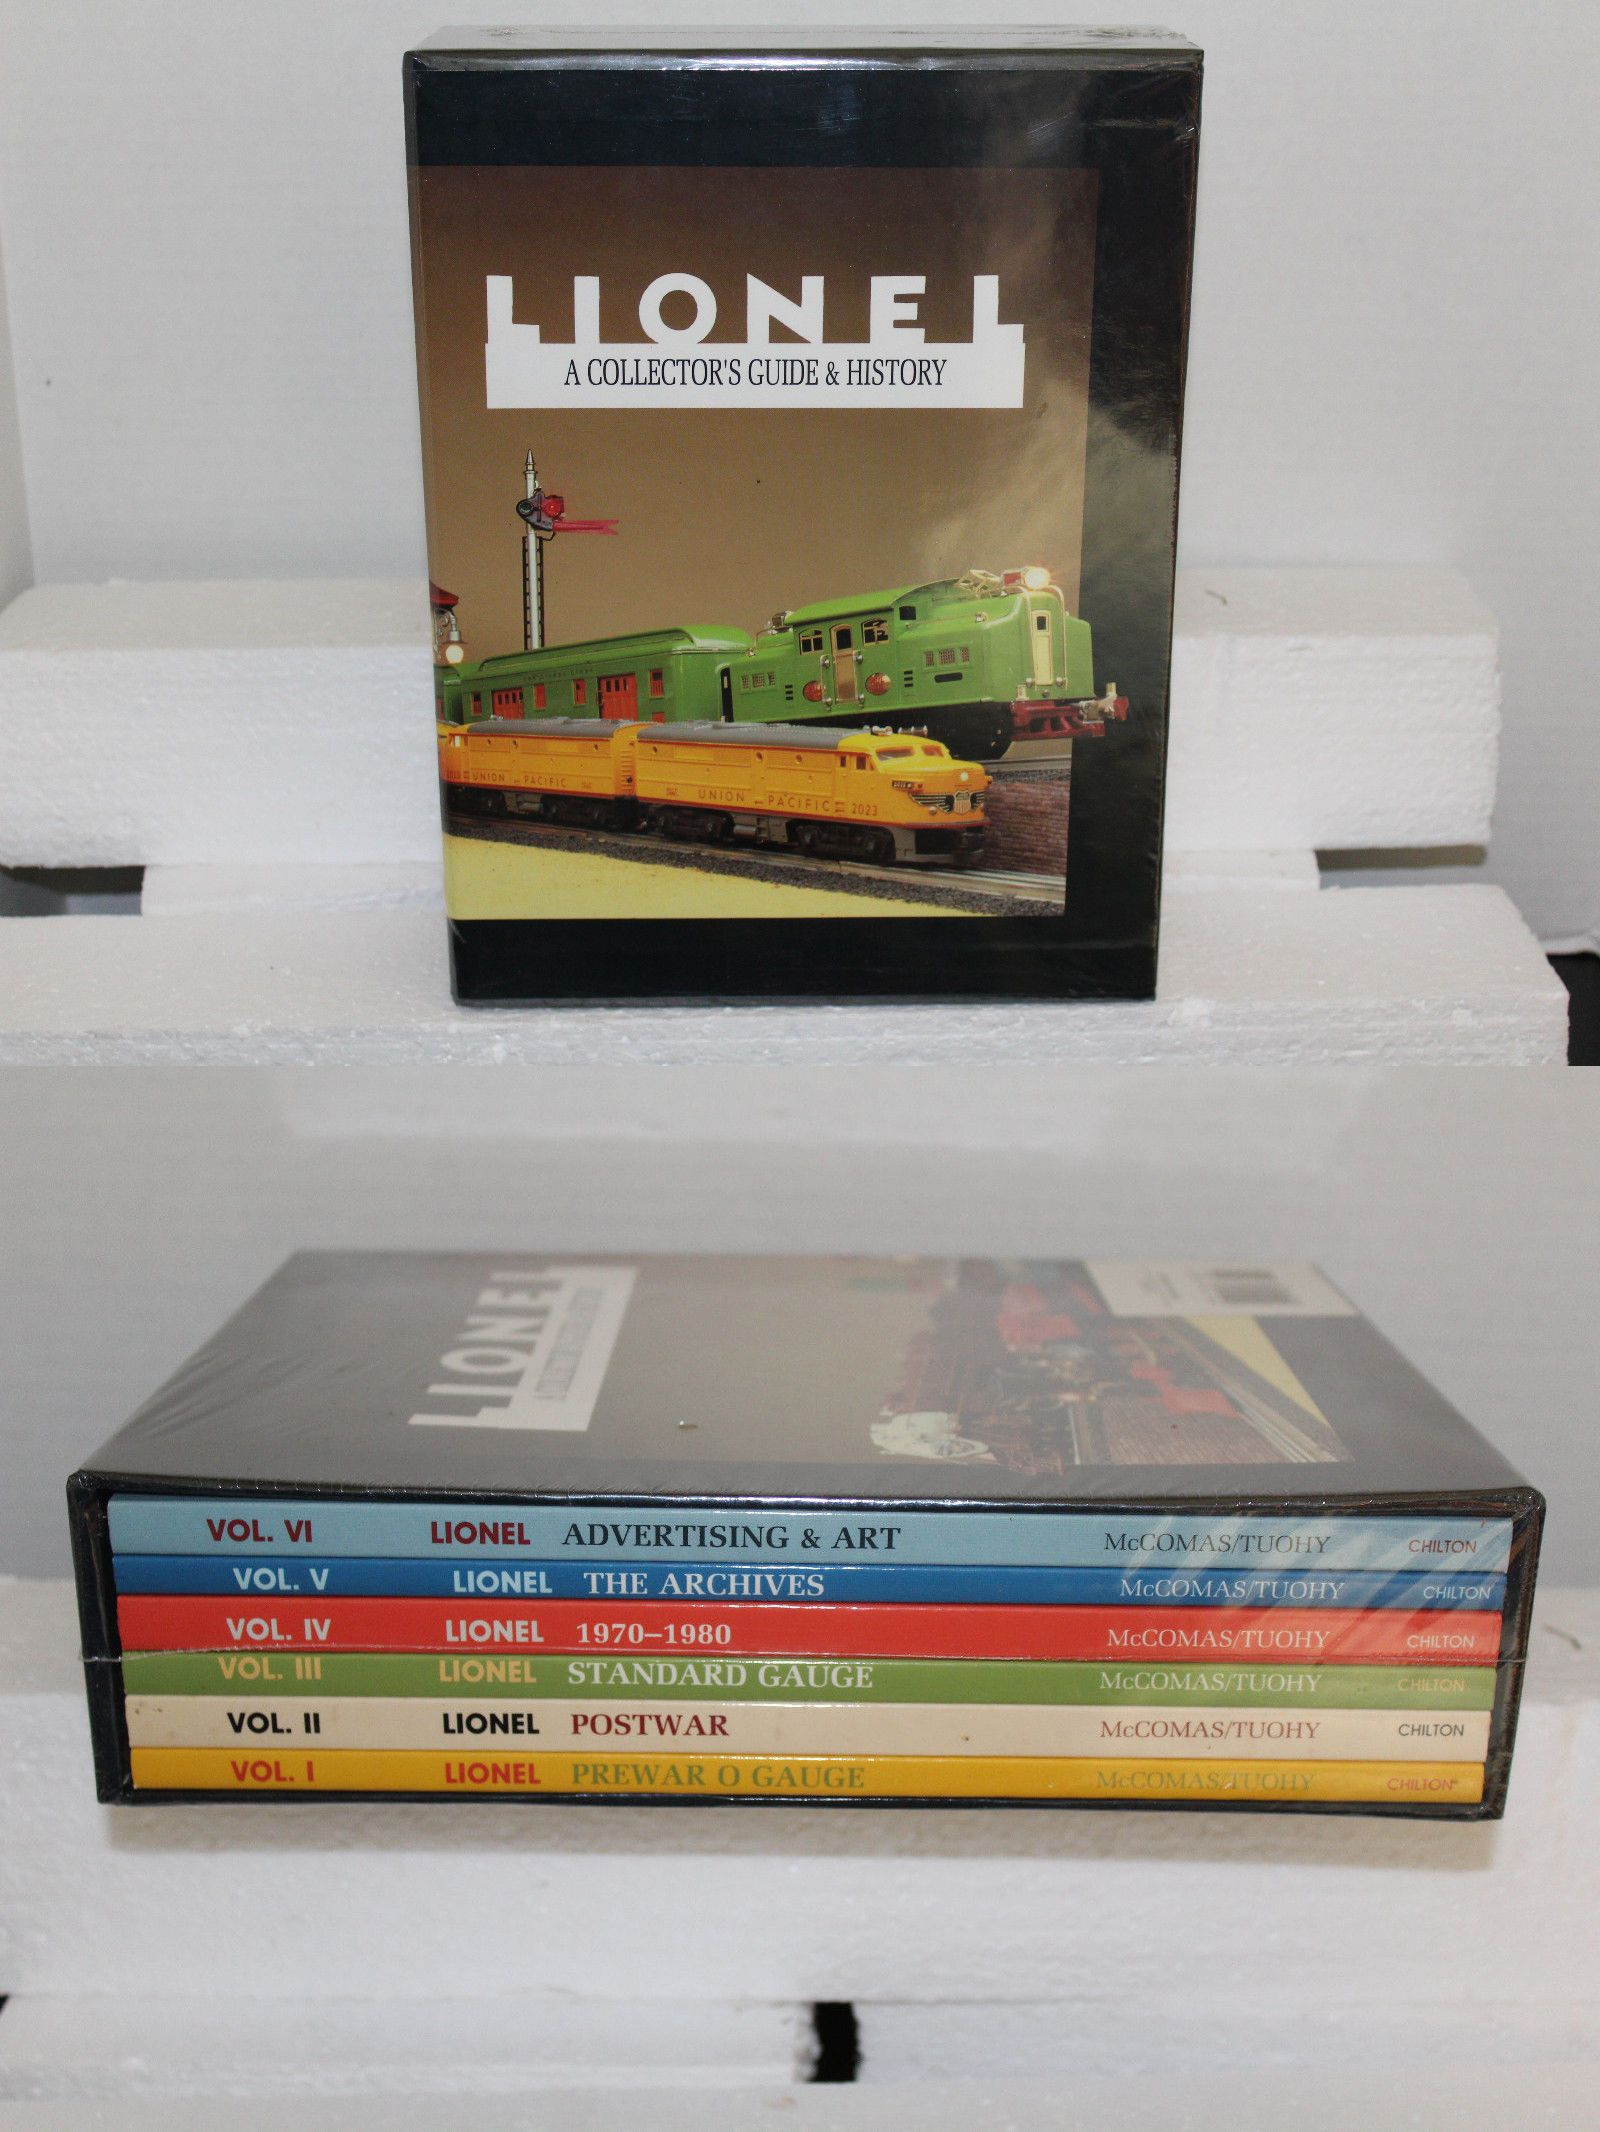 Price Guides 99847: Lionel A Collector S Guide And History -> BUY IT NOW ONLY: $149.95 on eBay!